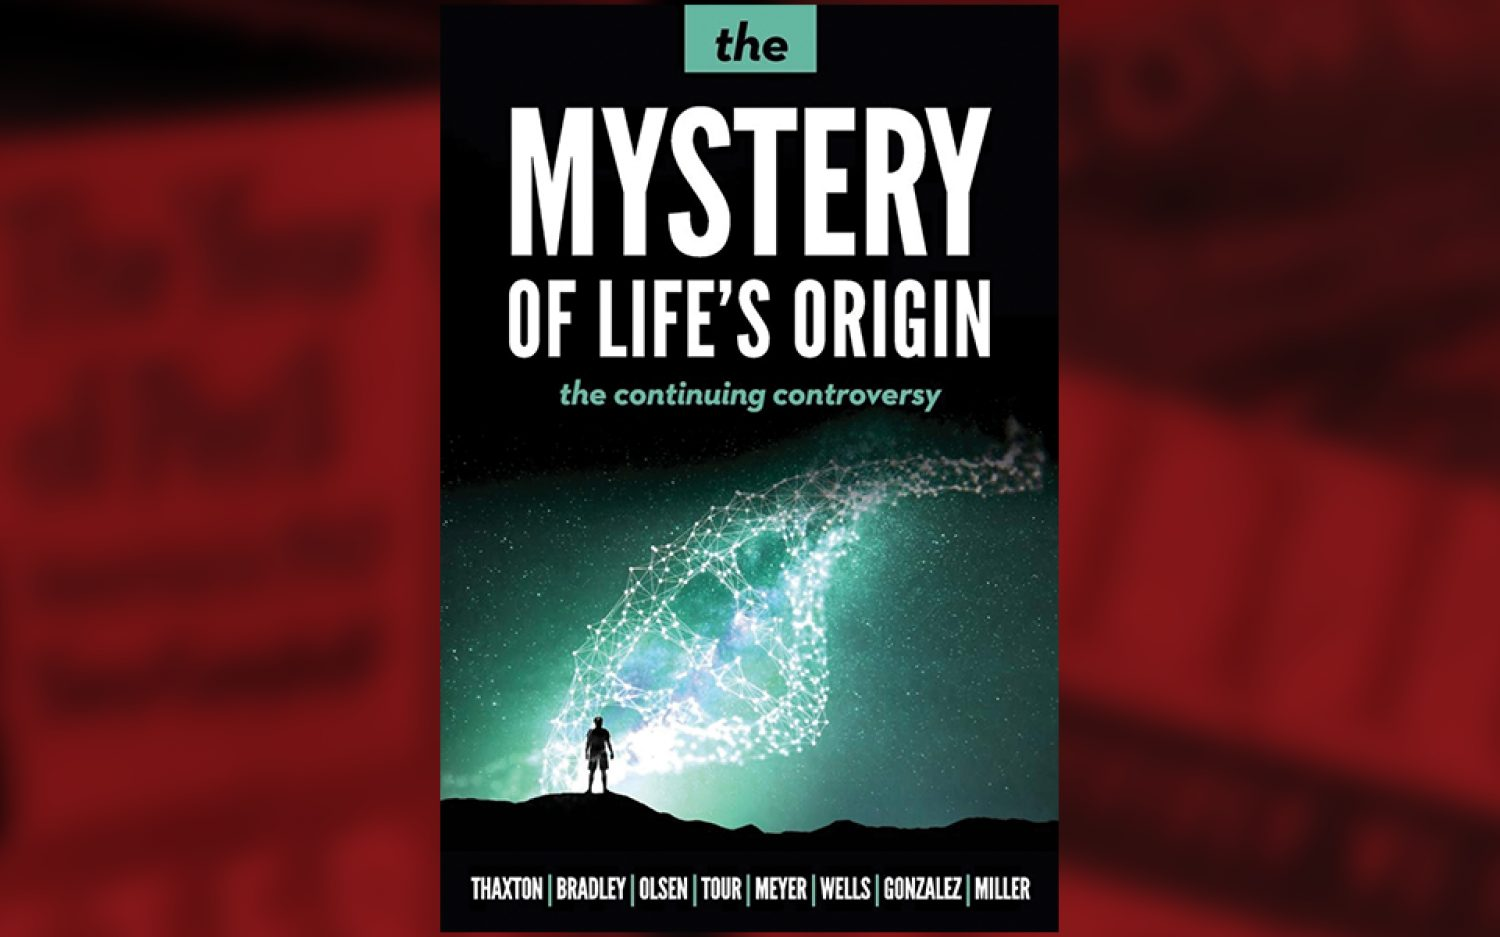 Matters of mystery